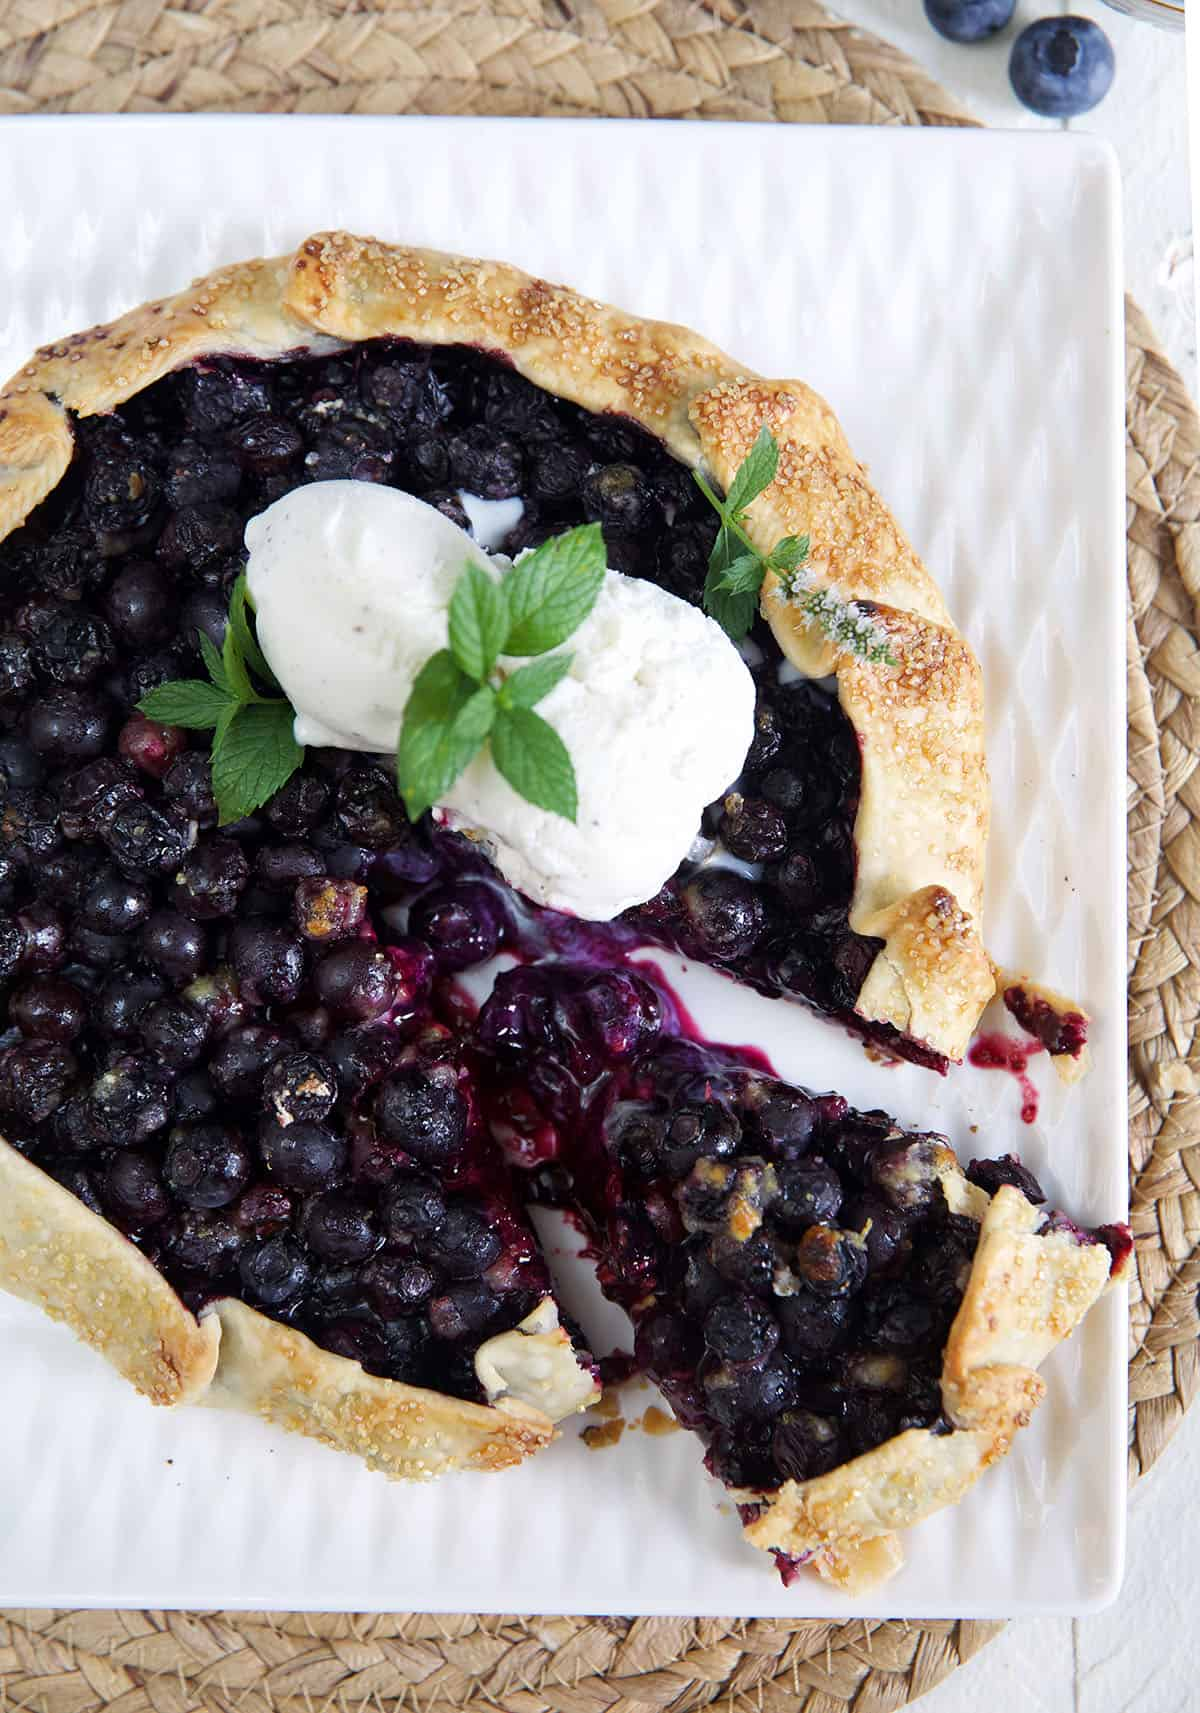 Blueberry Galette with ice cream on top and a wedge cut out of it.